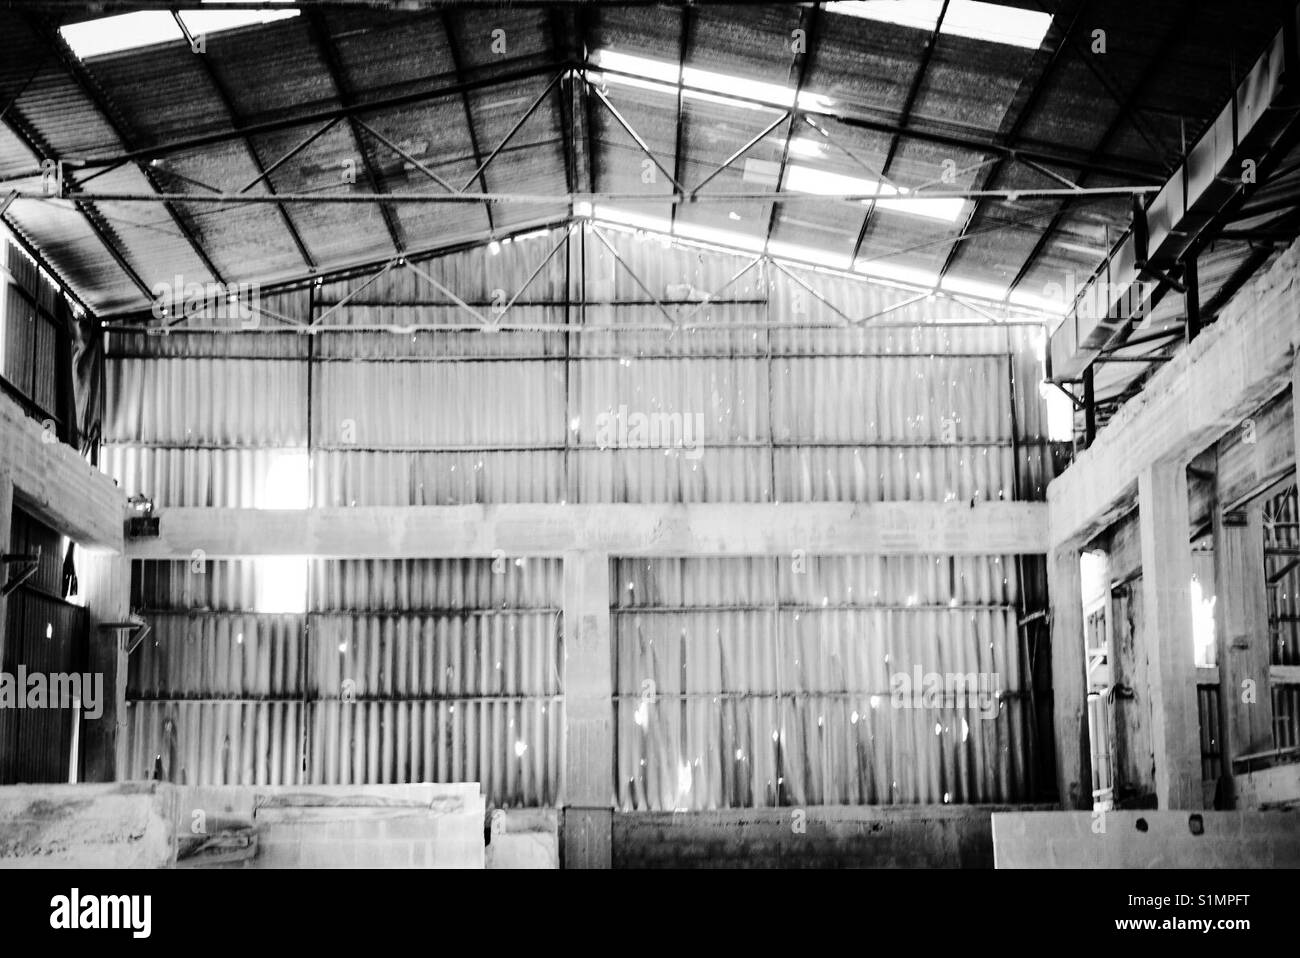 A warehouse riddled with bullet holes in Aida refugee camp in Bethlehem following the second intifada of 2002. - Stock Image